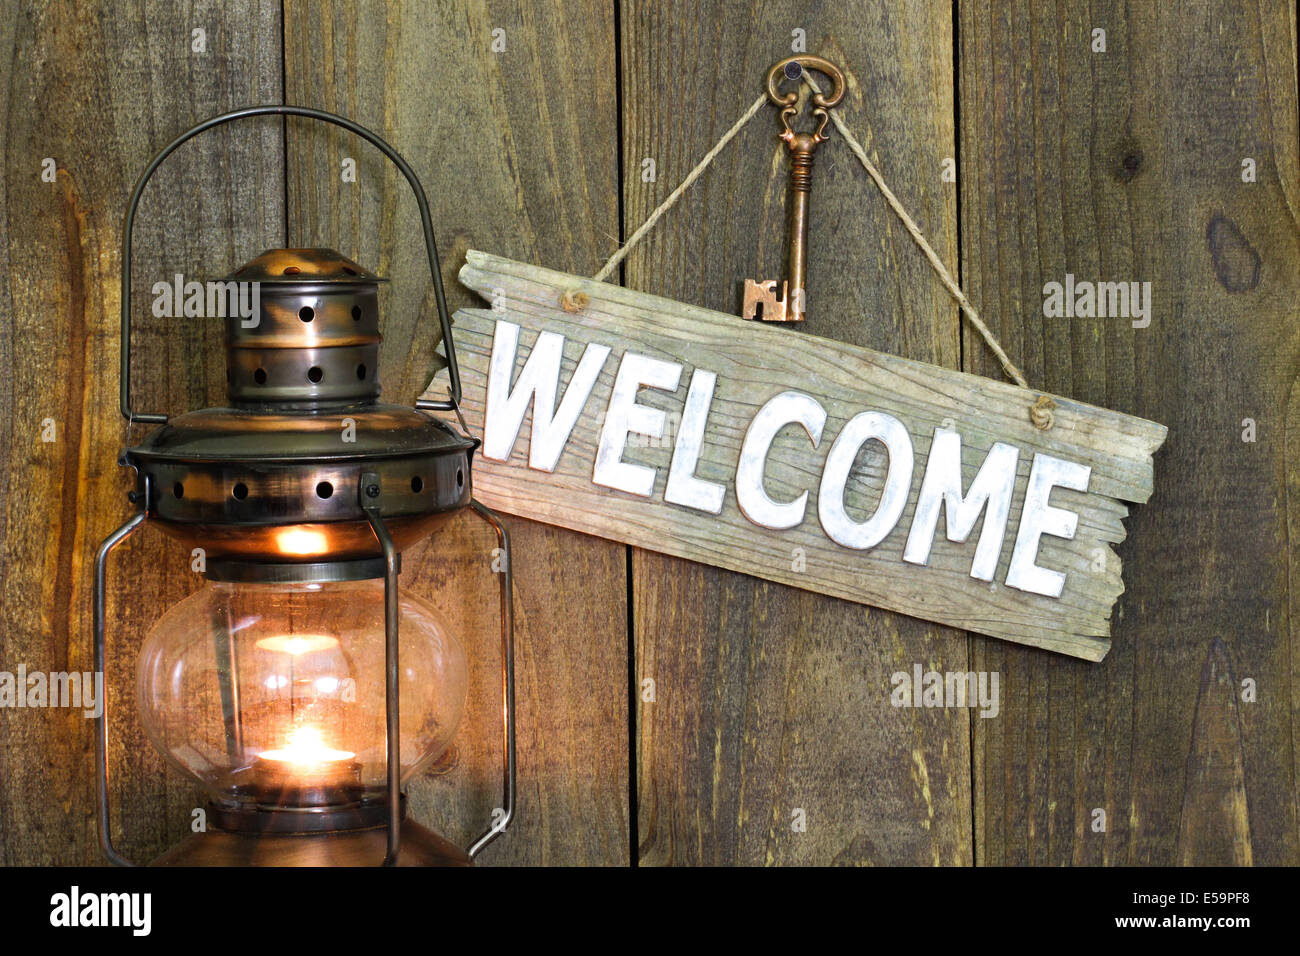 Welcome sign with bronze skeleton key hanging on wooden fence by glowing antique lantern - Stock Image